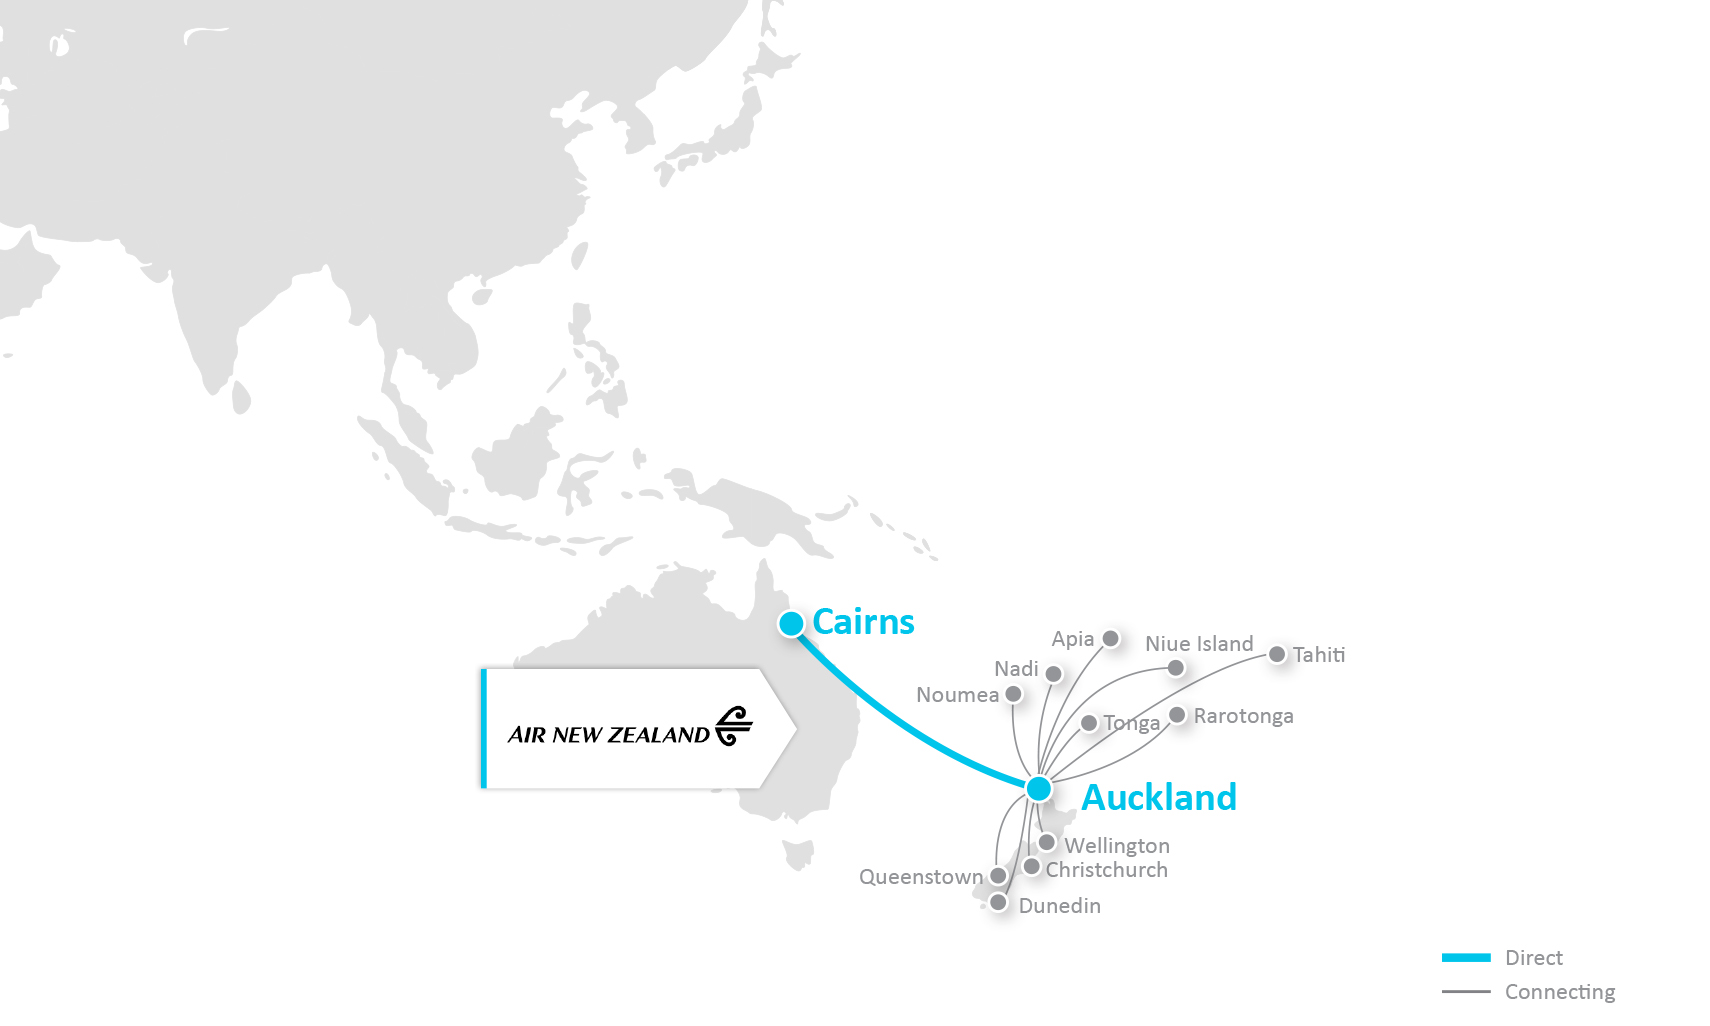 Check for direct » Cairns Airport